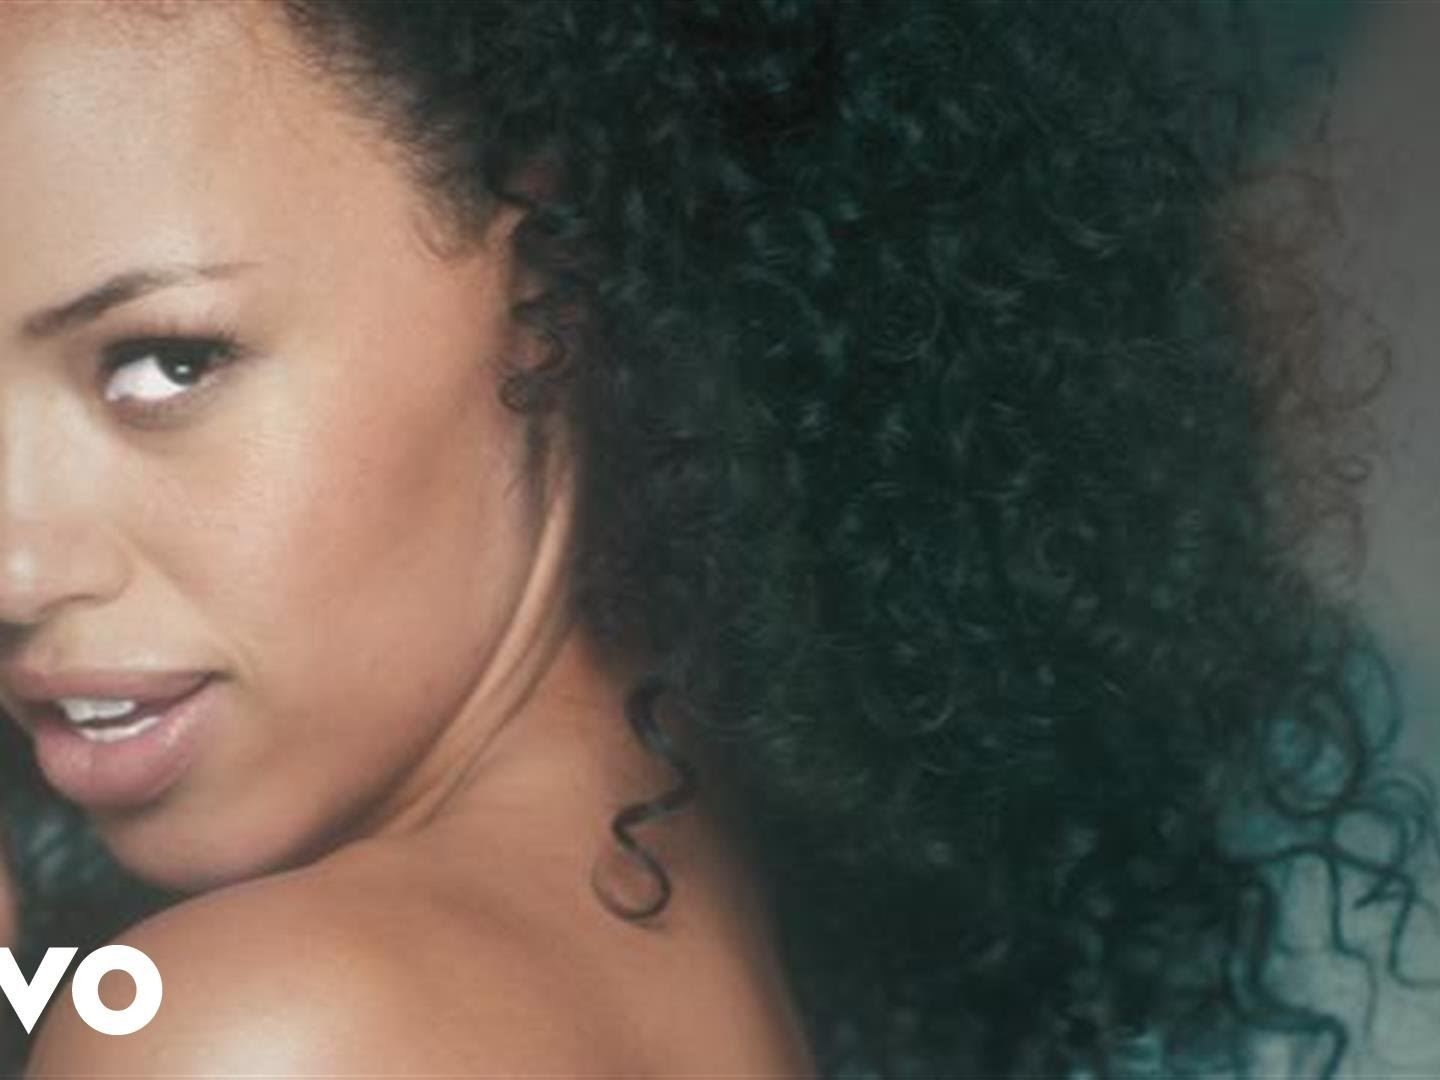 elle-varner-i-don't-care